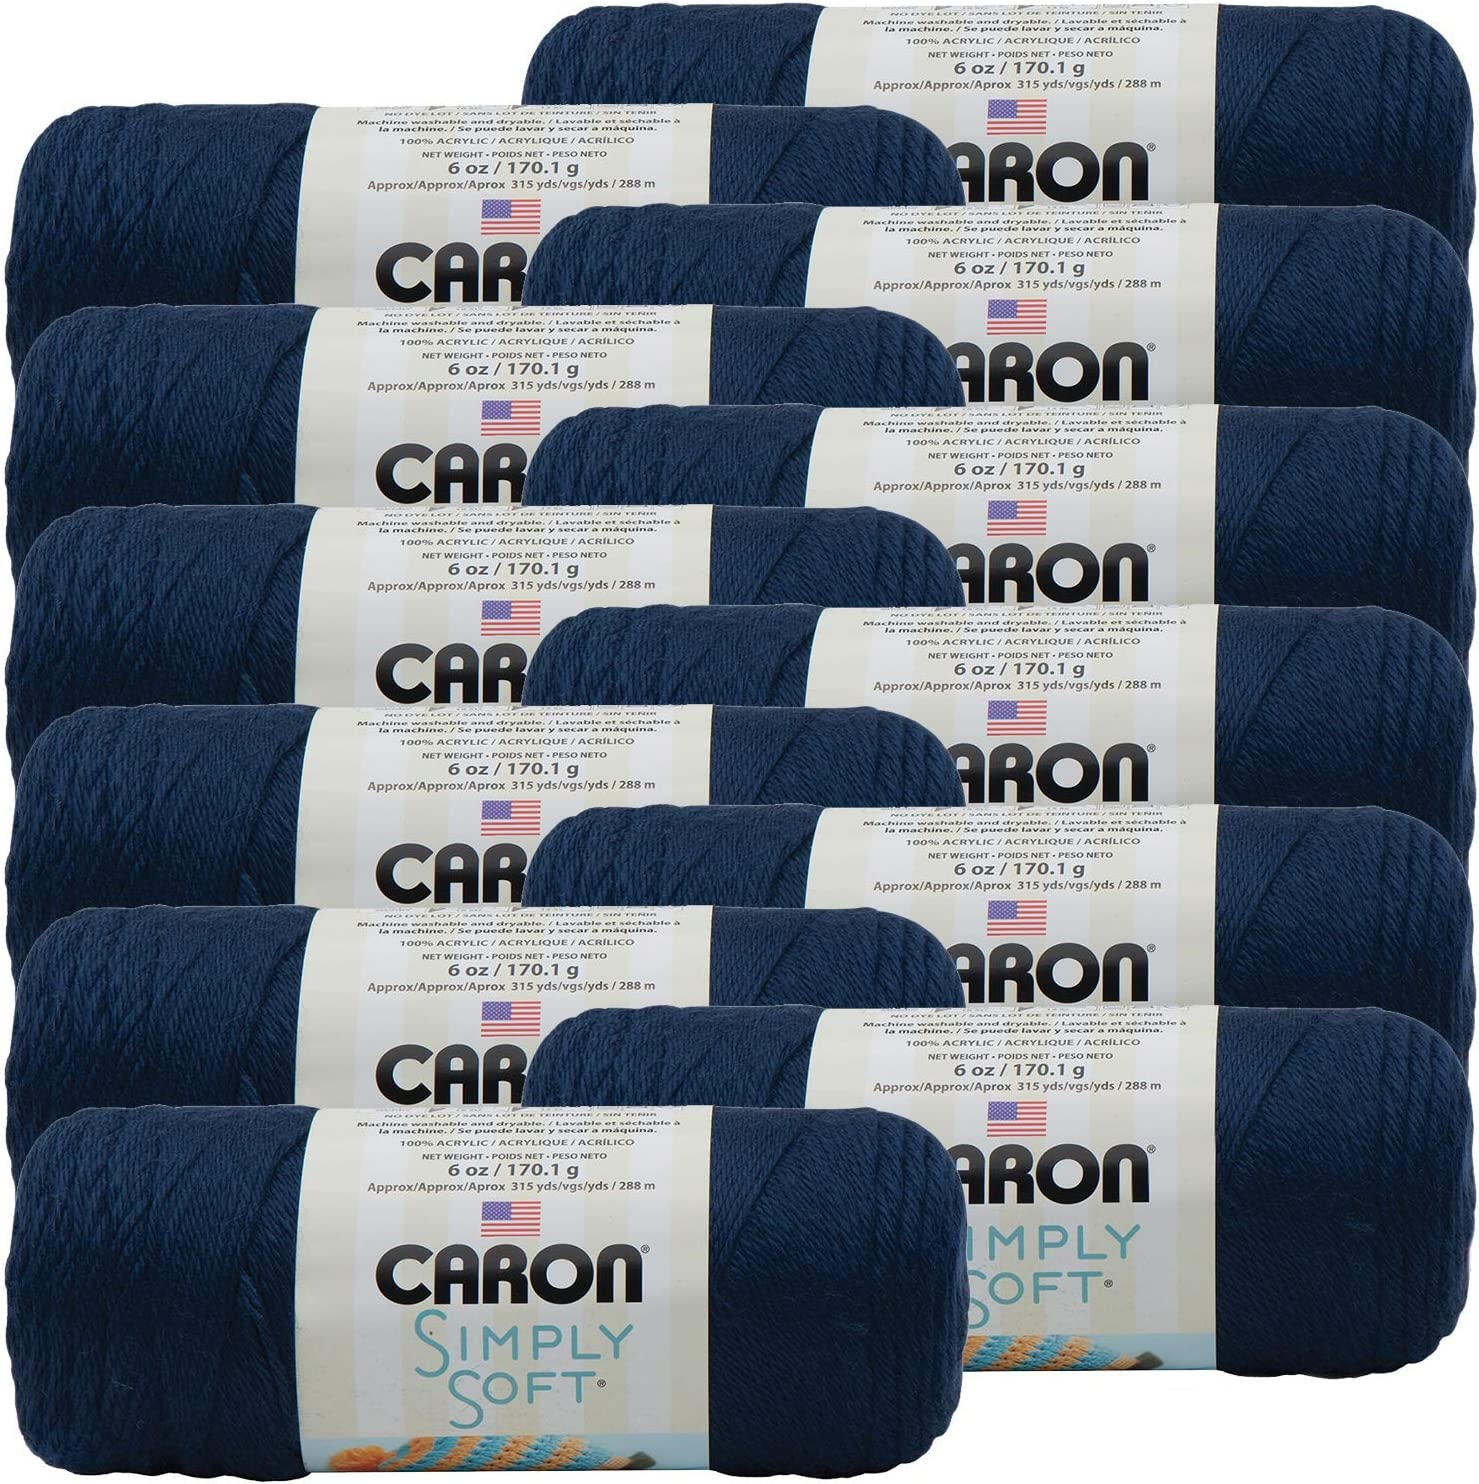 Caron Dark Country Blue Simply Max 69% OFF Soft Multipack Yarn Solids of NEW before selling ☆ 1